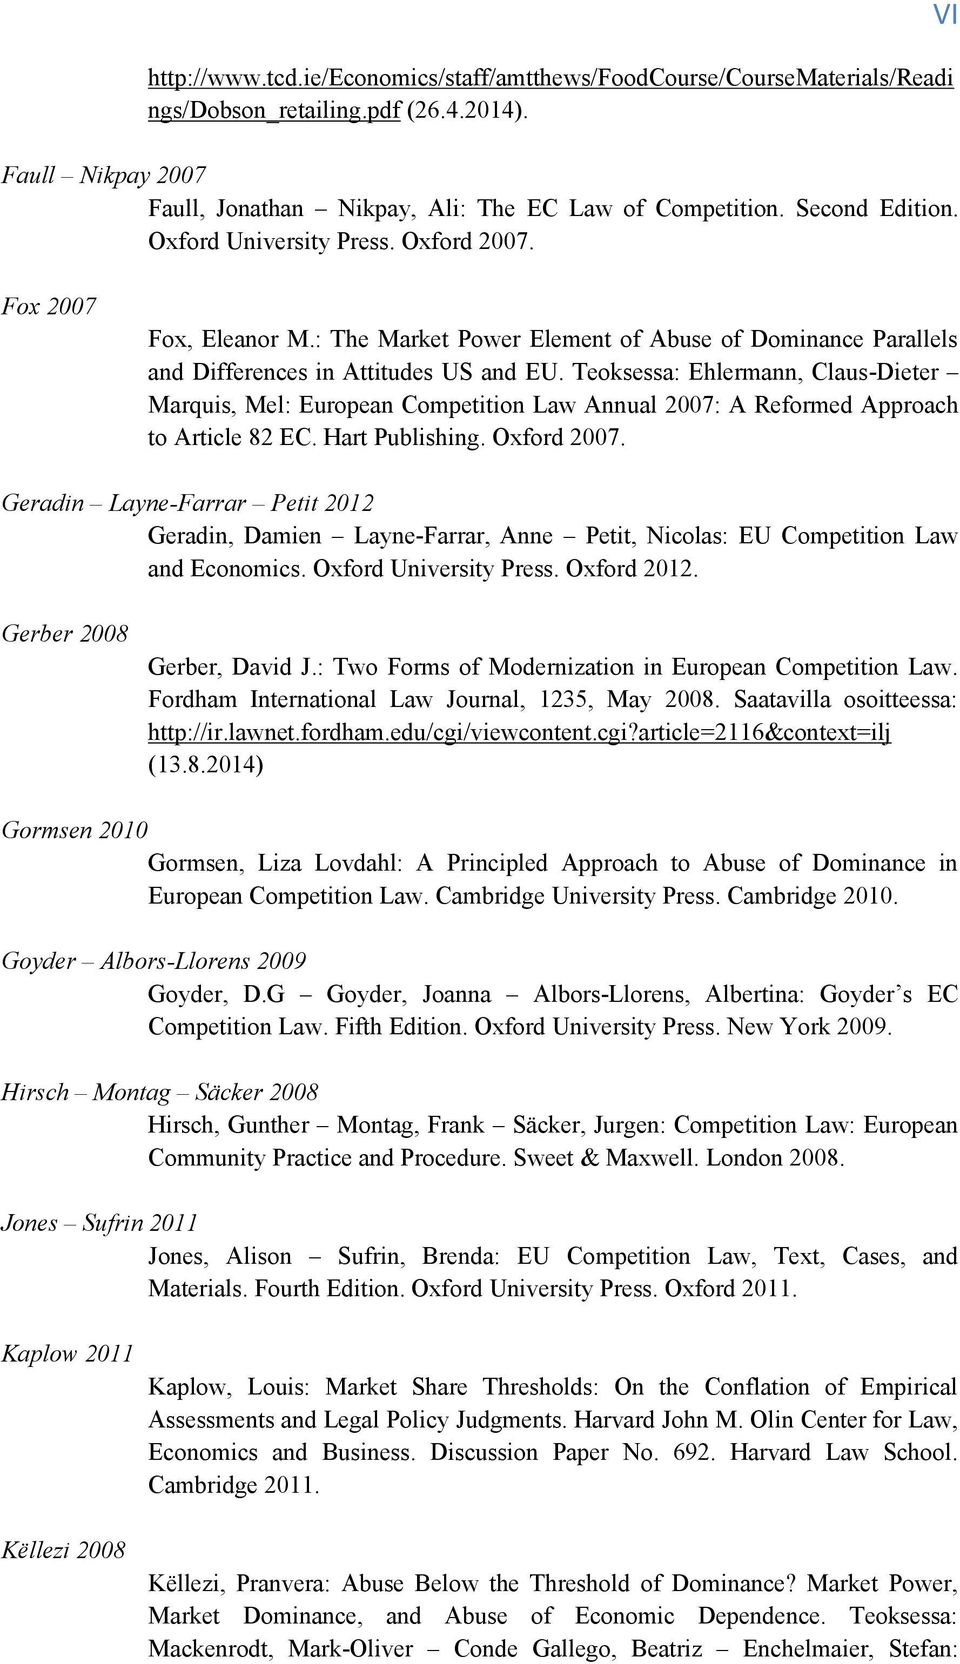 Teoksessa: Ehlermann, Claus-Dieter Marquis, Mel: European Competition Law Annual 2007: A Reformed Approach to Article 82 EC. Hart Publishing. Oxford 2007.